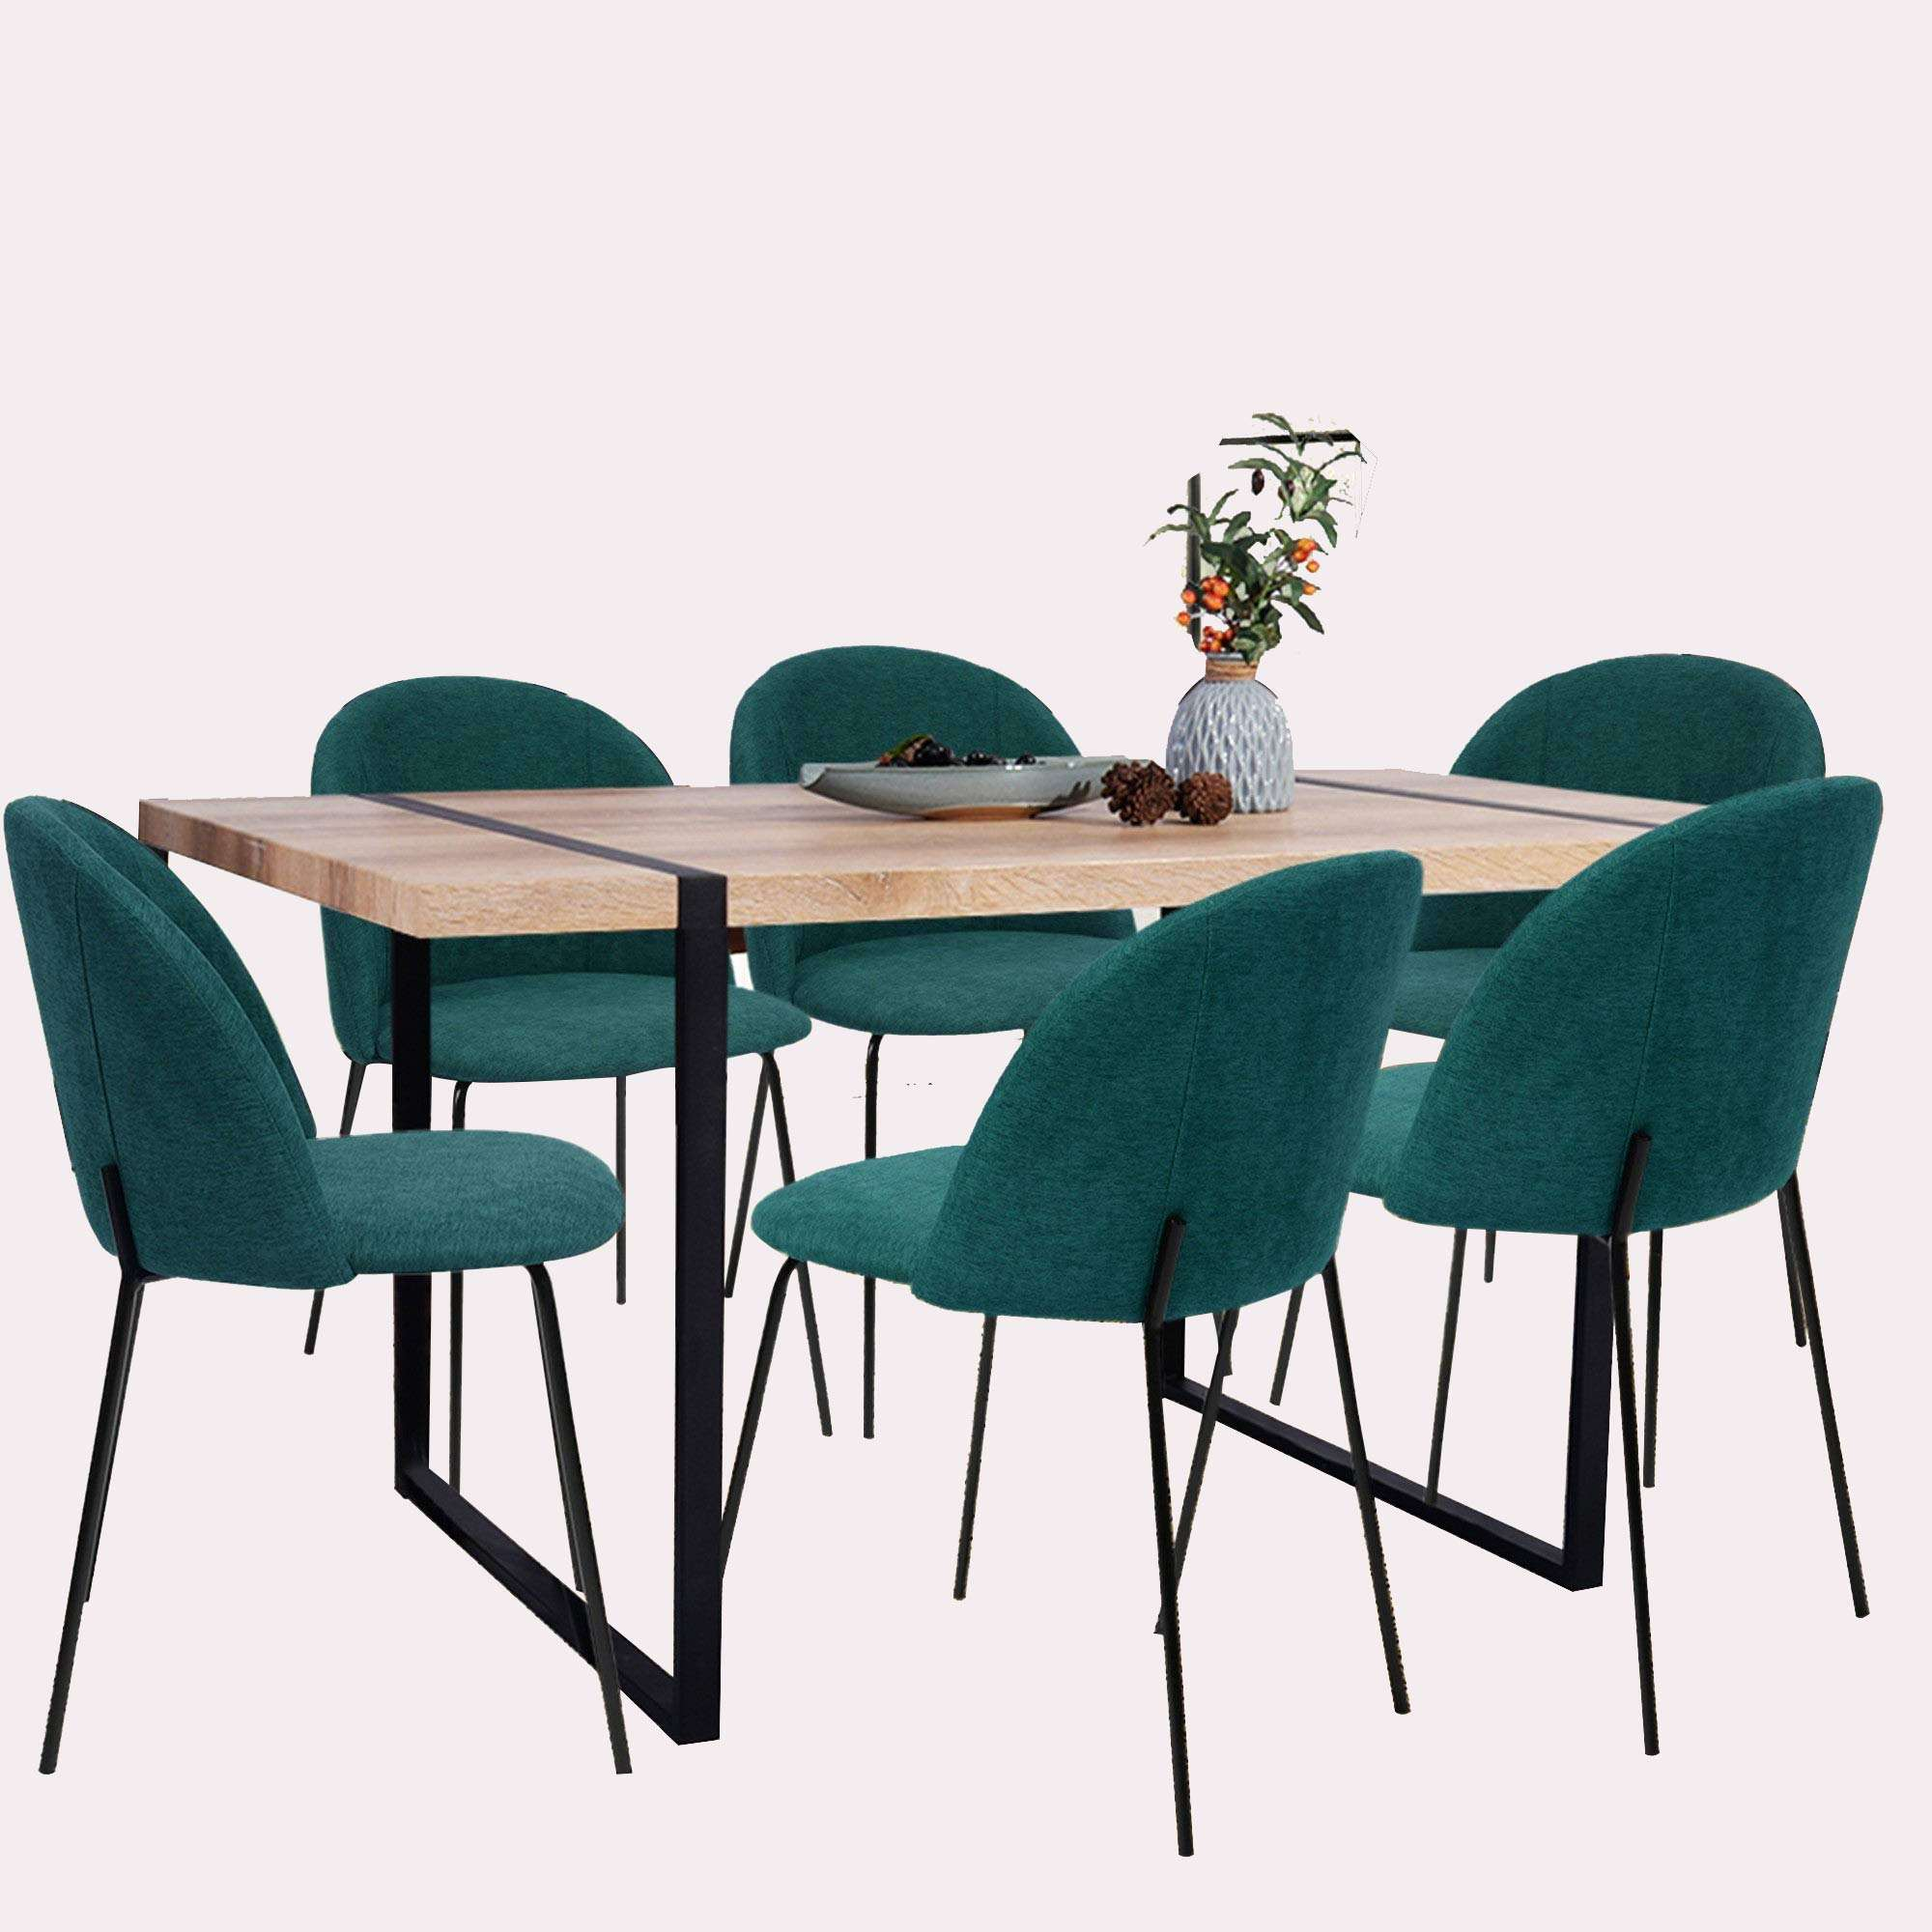 free sample and Best reviews wooden dining table with metal legs creative restaurant set 6/8/10/12 seater dining table set